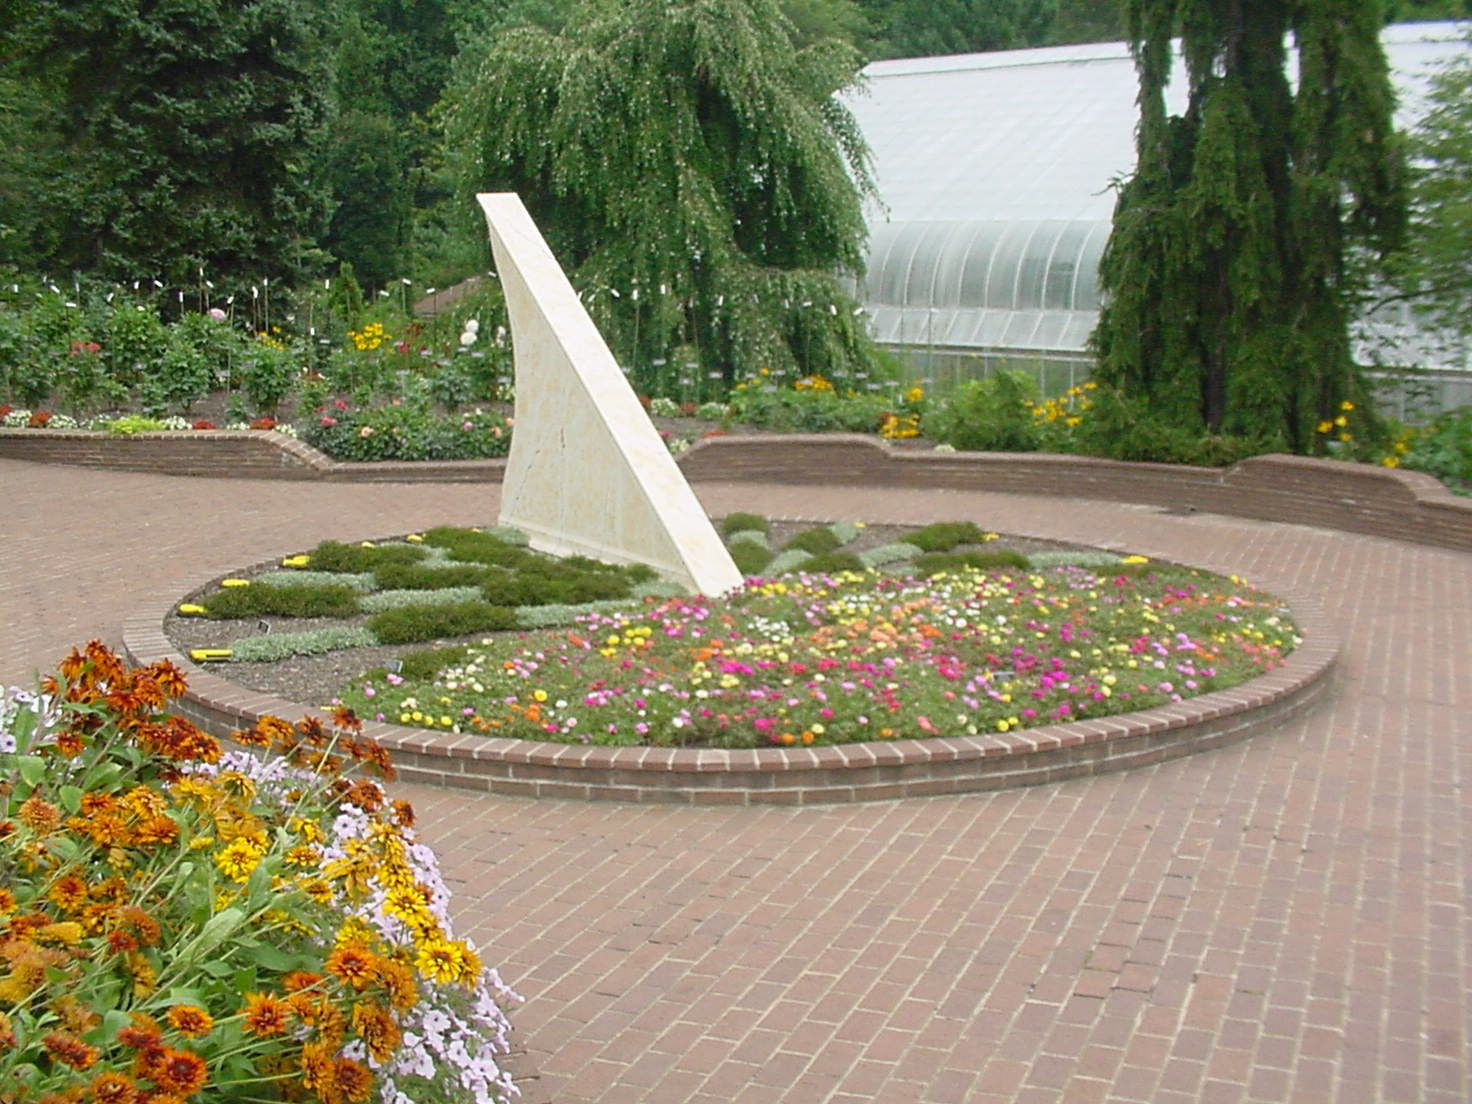 Captivating Pictures Of Sundials | ... Gardens Botanical Sundial Bgbs Is A Classic  Horizontal Sundial